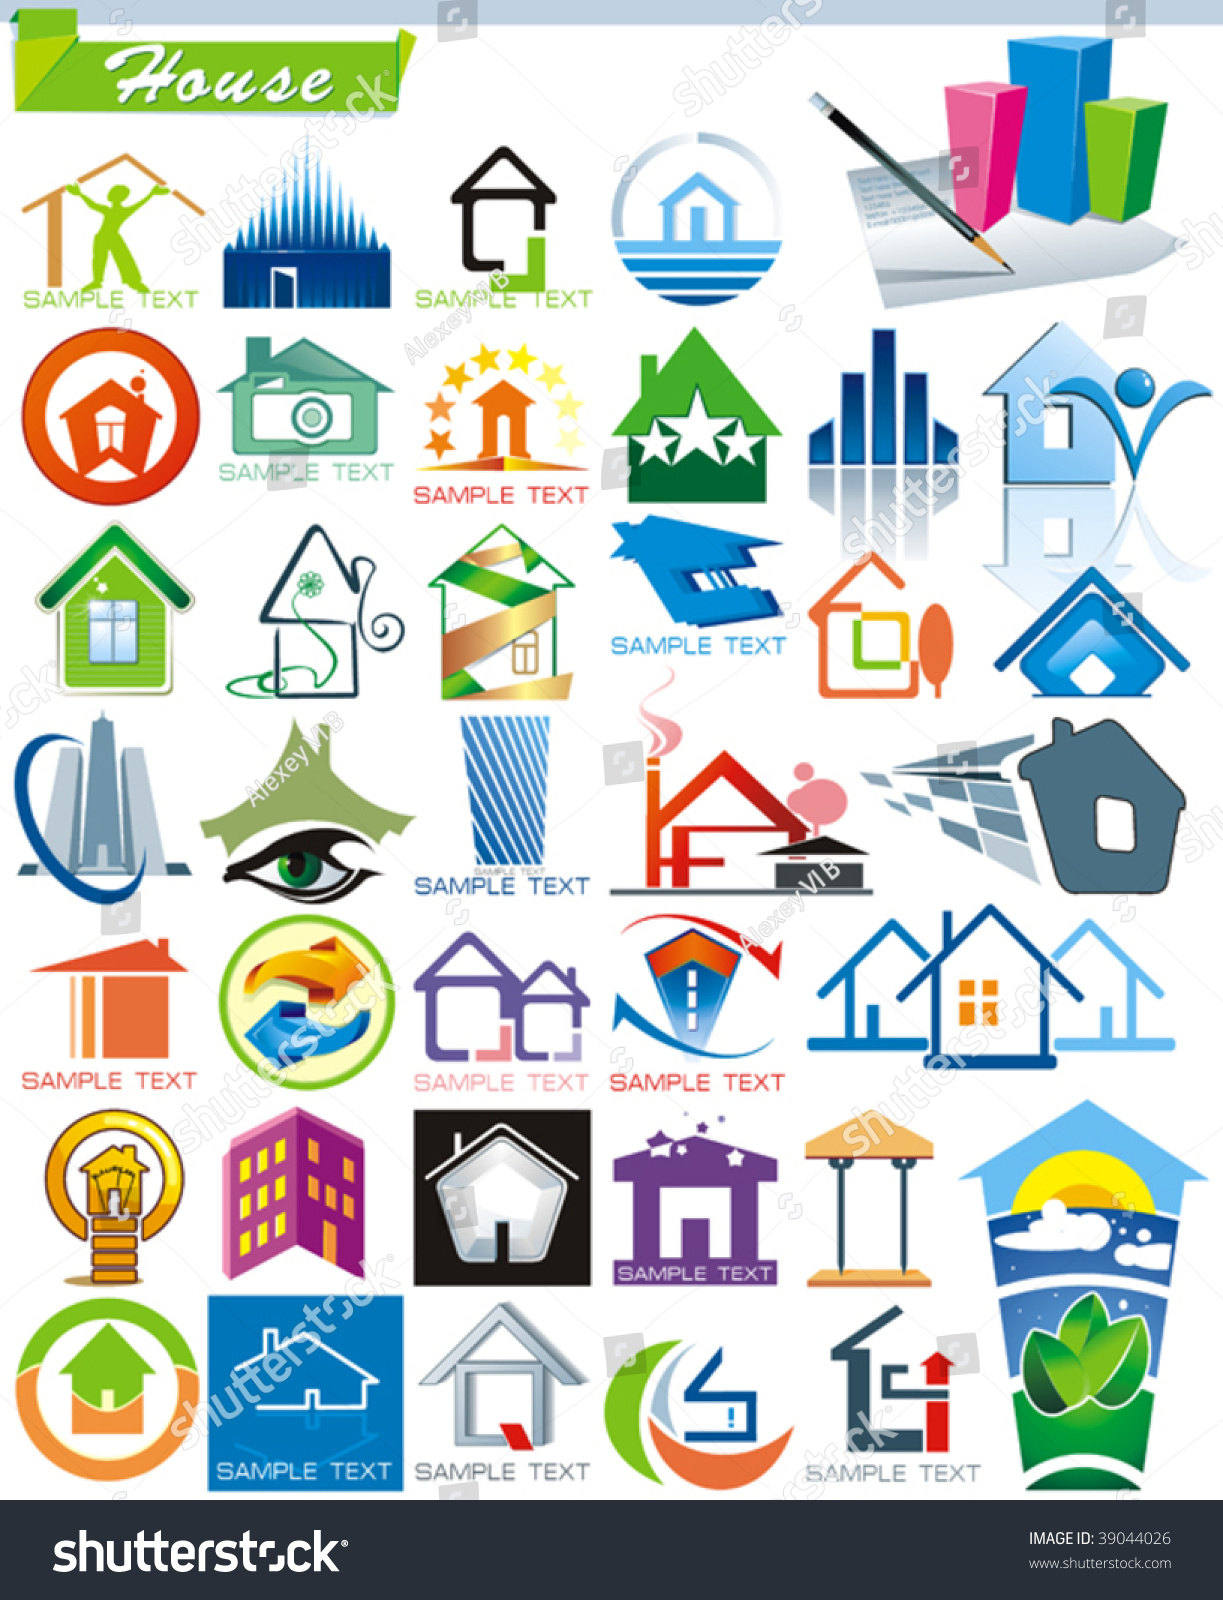 Collection 5 exclusive series house vector icons stock for House construction companies